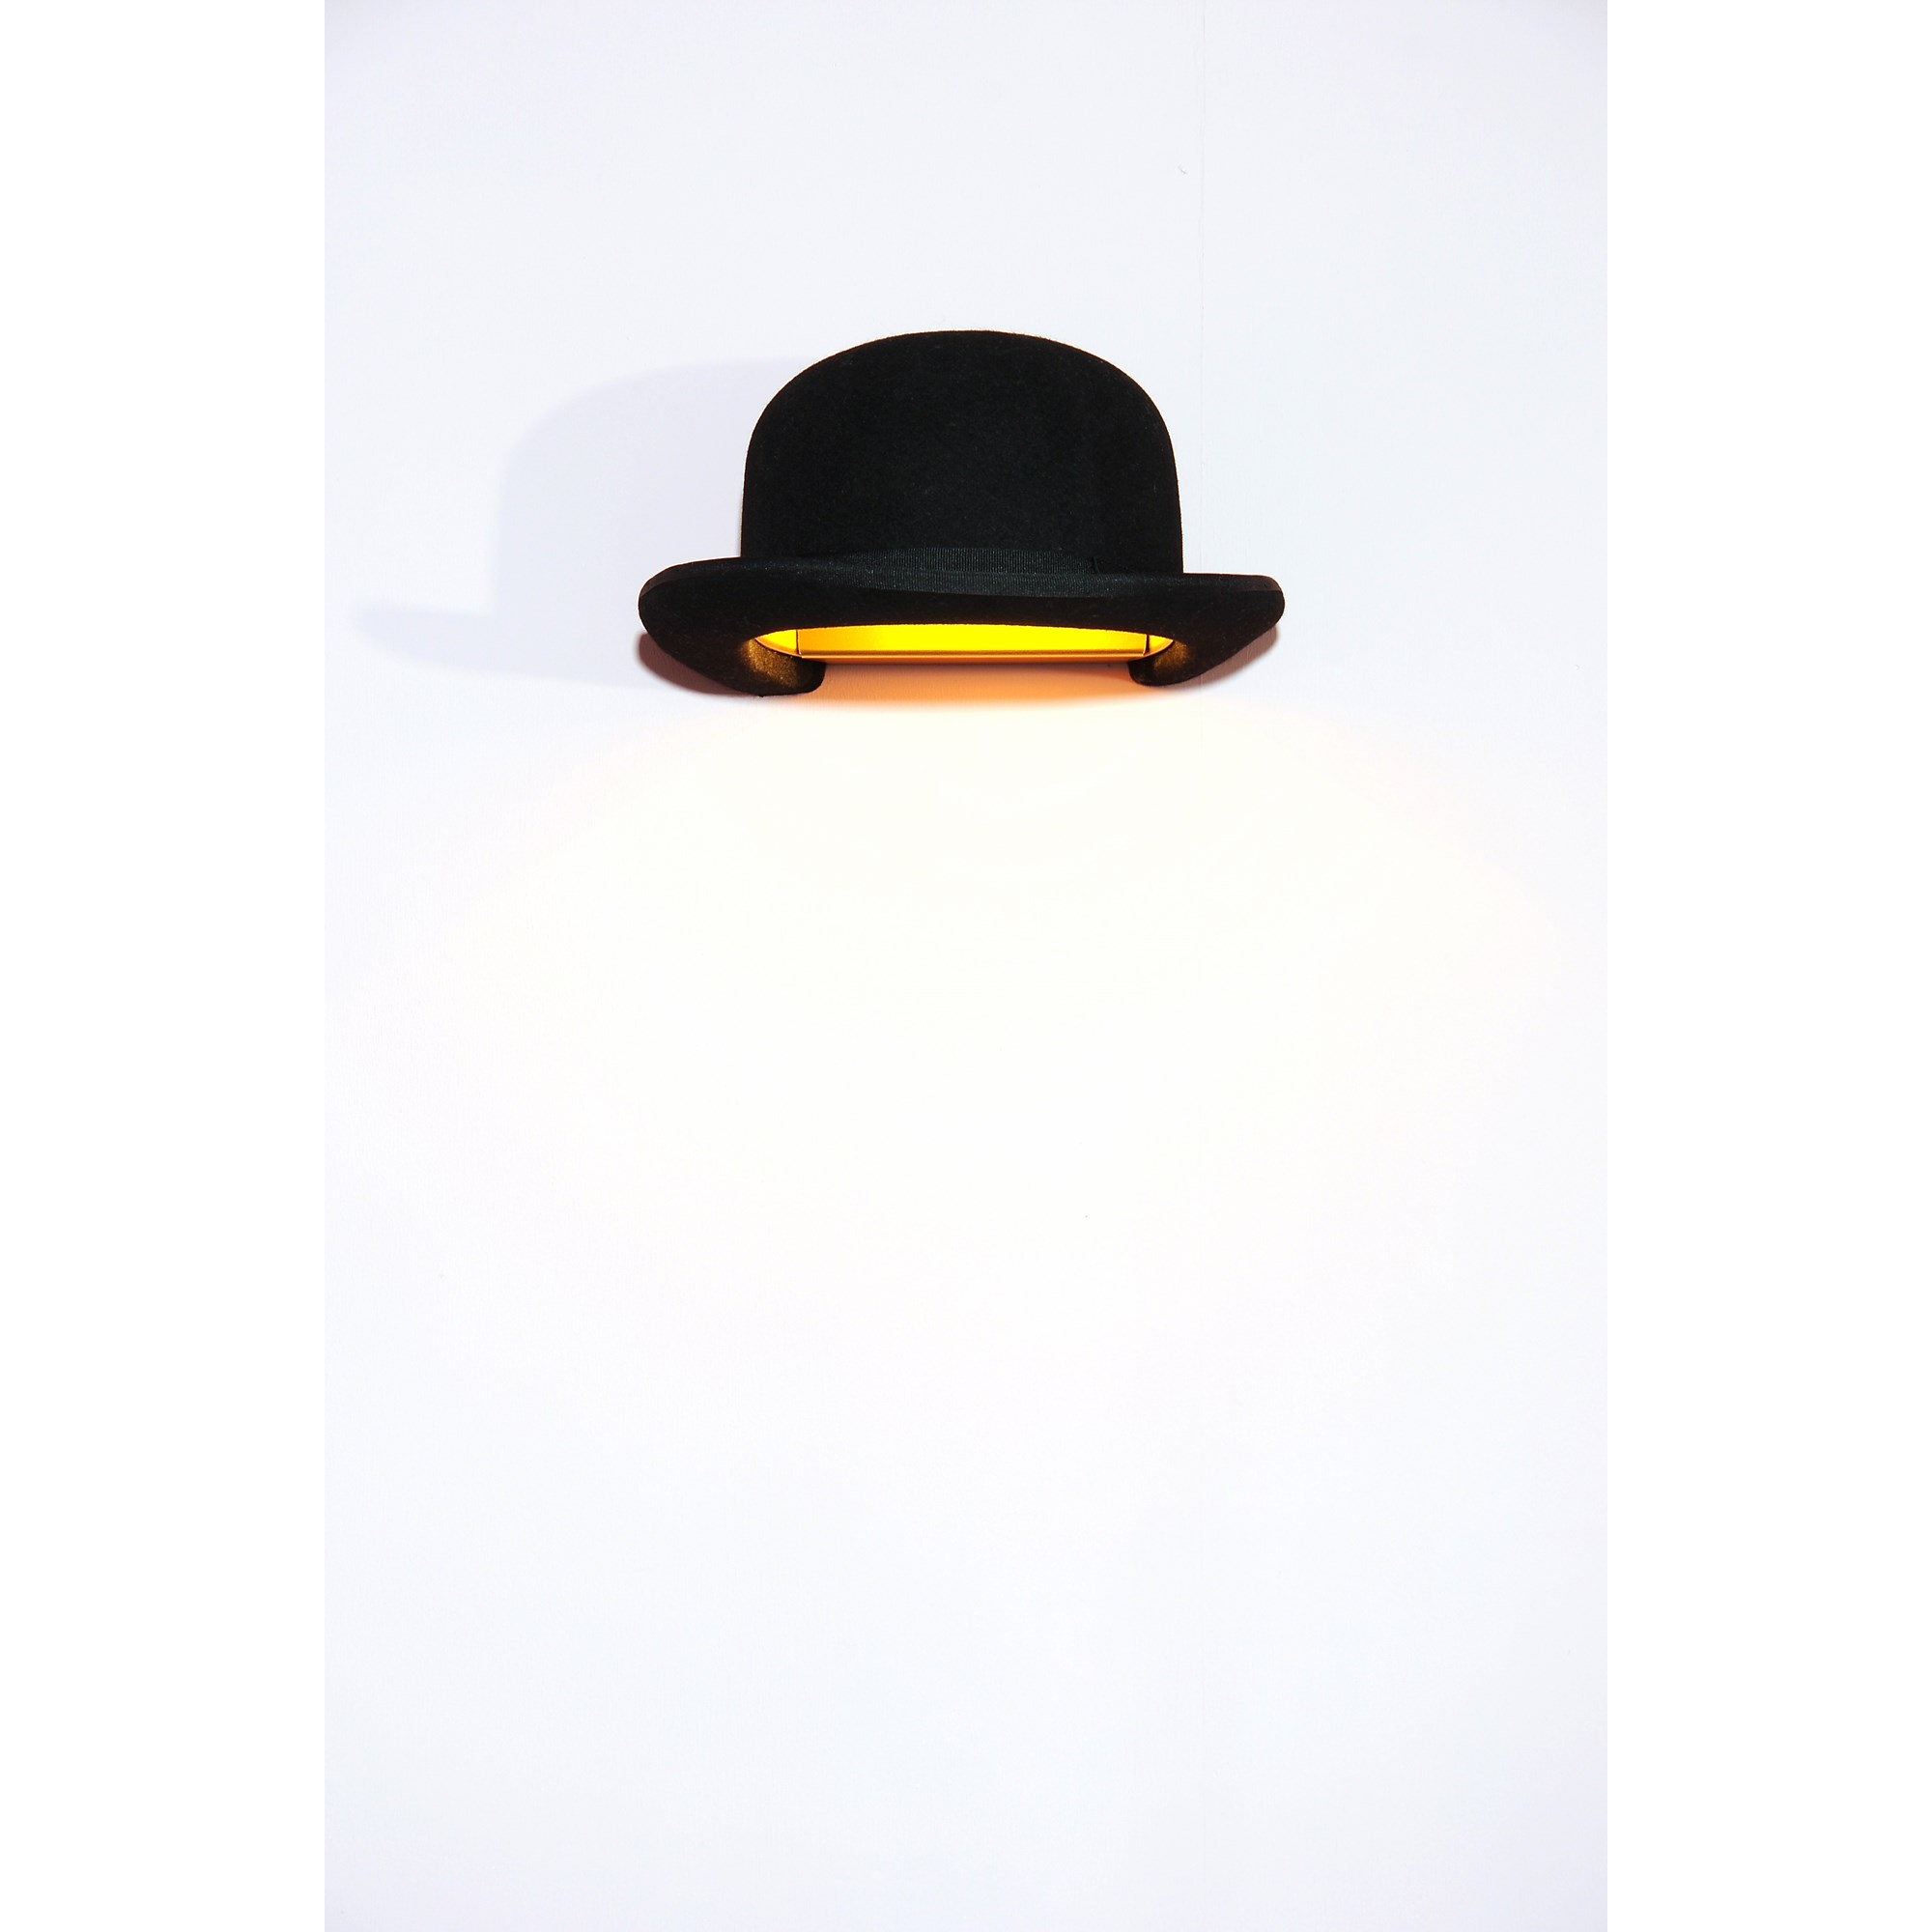 c1c1f49f374 Innermost Jeeves with Wall Light